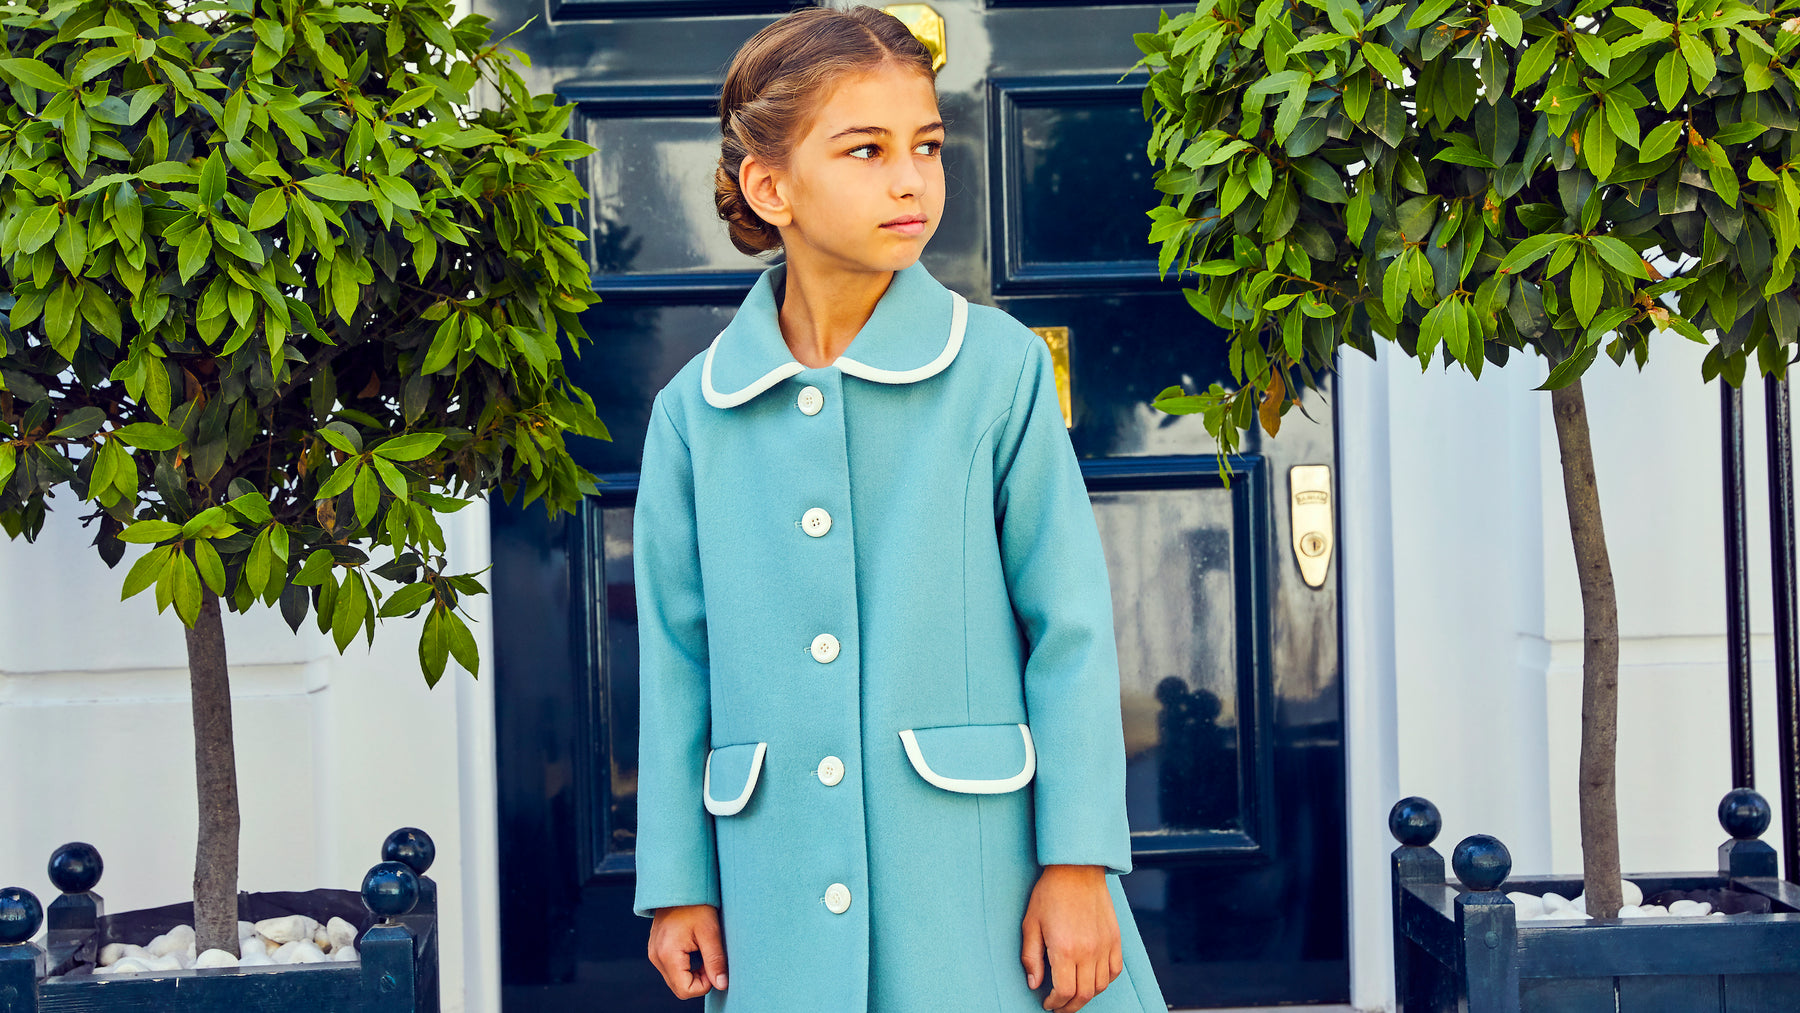 Britannical luxury children's coats luxury kids coats luxury children's clothing made in Britain